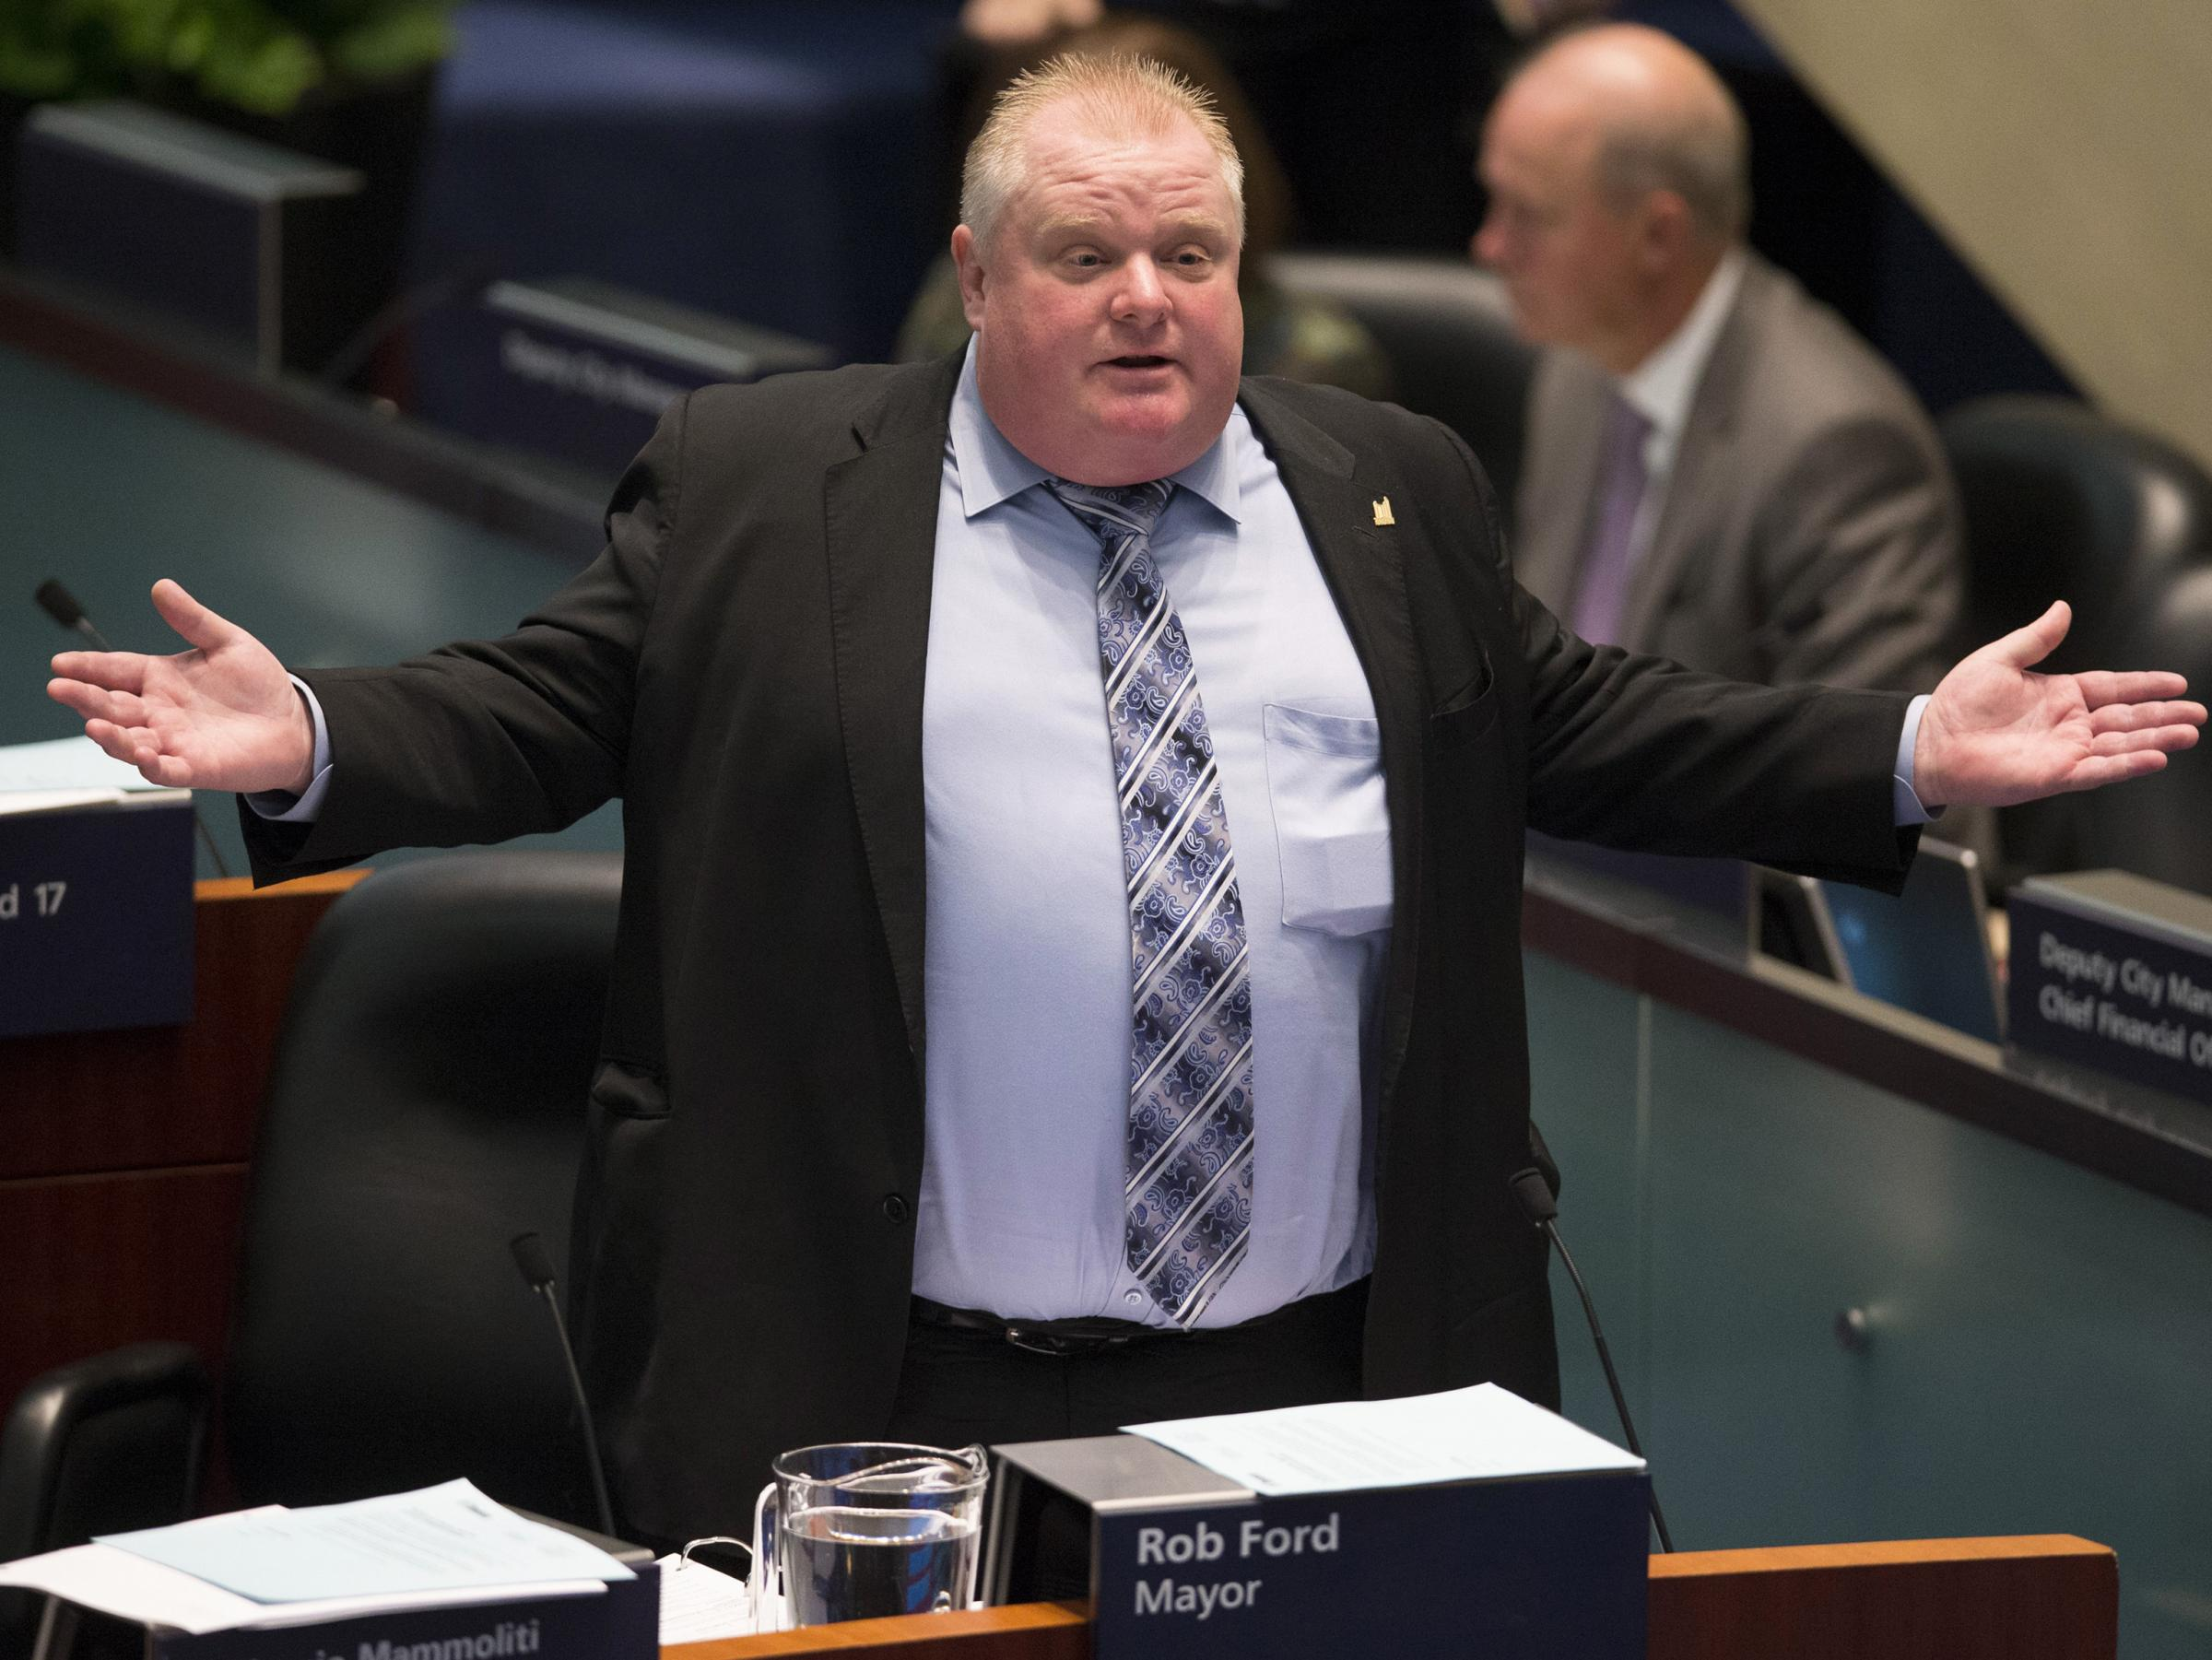 rob ford and toronto city council Nov 15 - toronto city council votes to strip scandal-plagued mayor rob ford of some of his powers but ford, who admits he smoked crack cocaine while in office, promised to challenge the moves in court jillian kitchener reports.